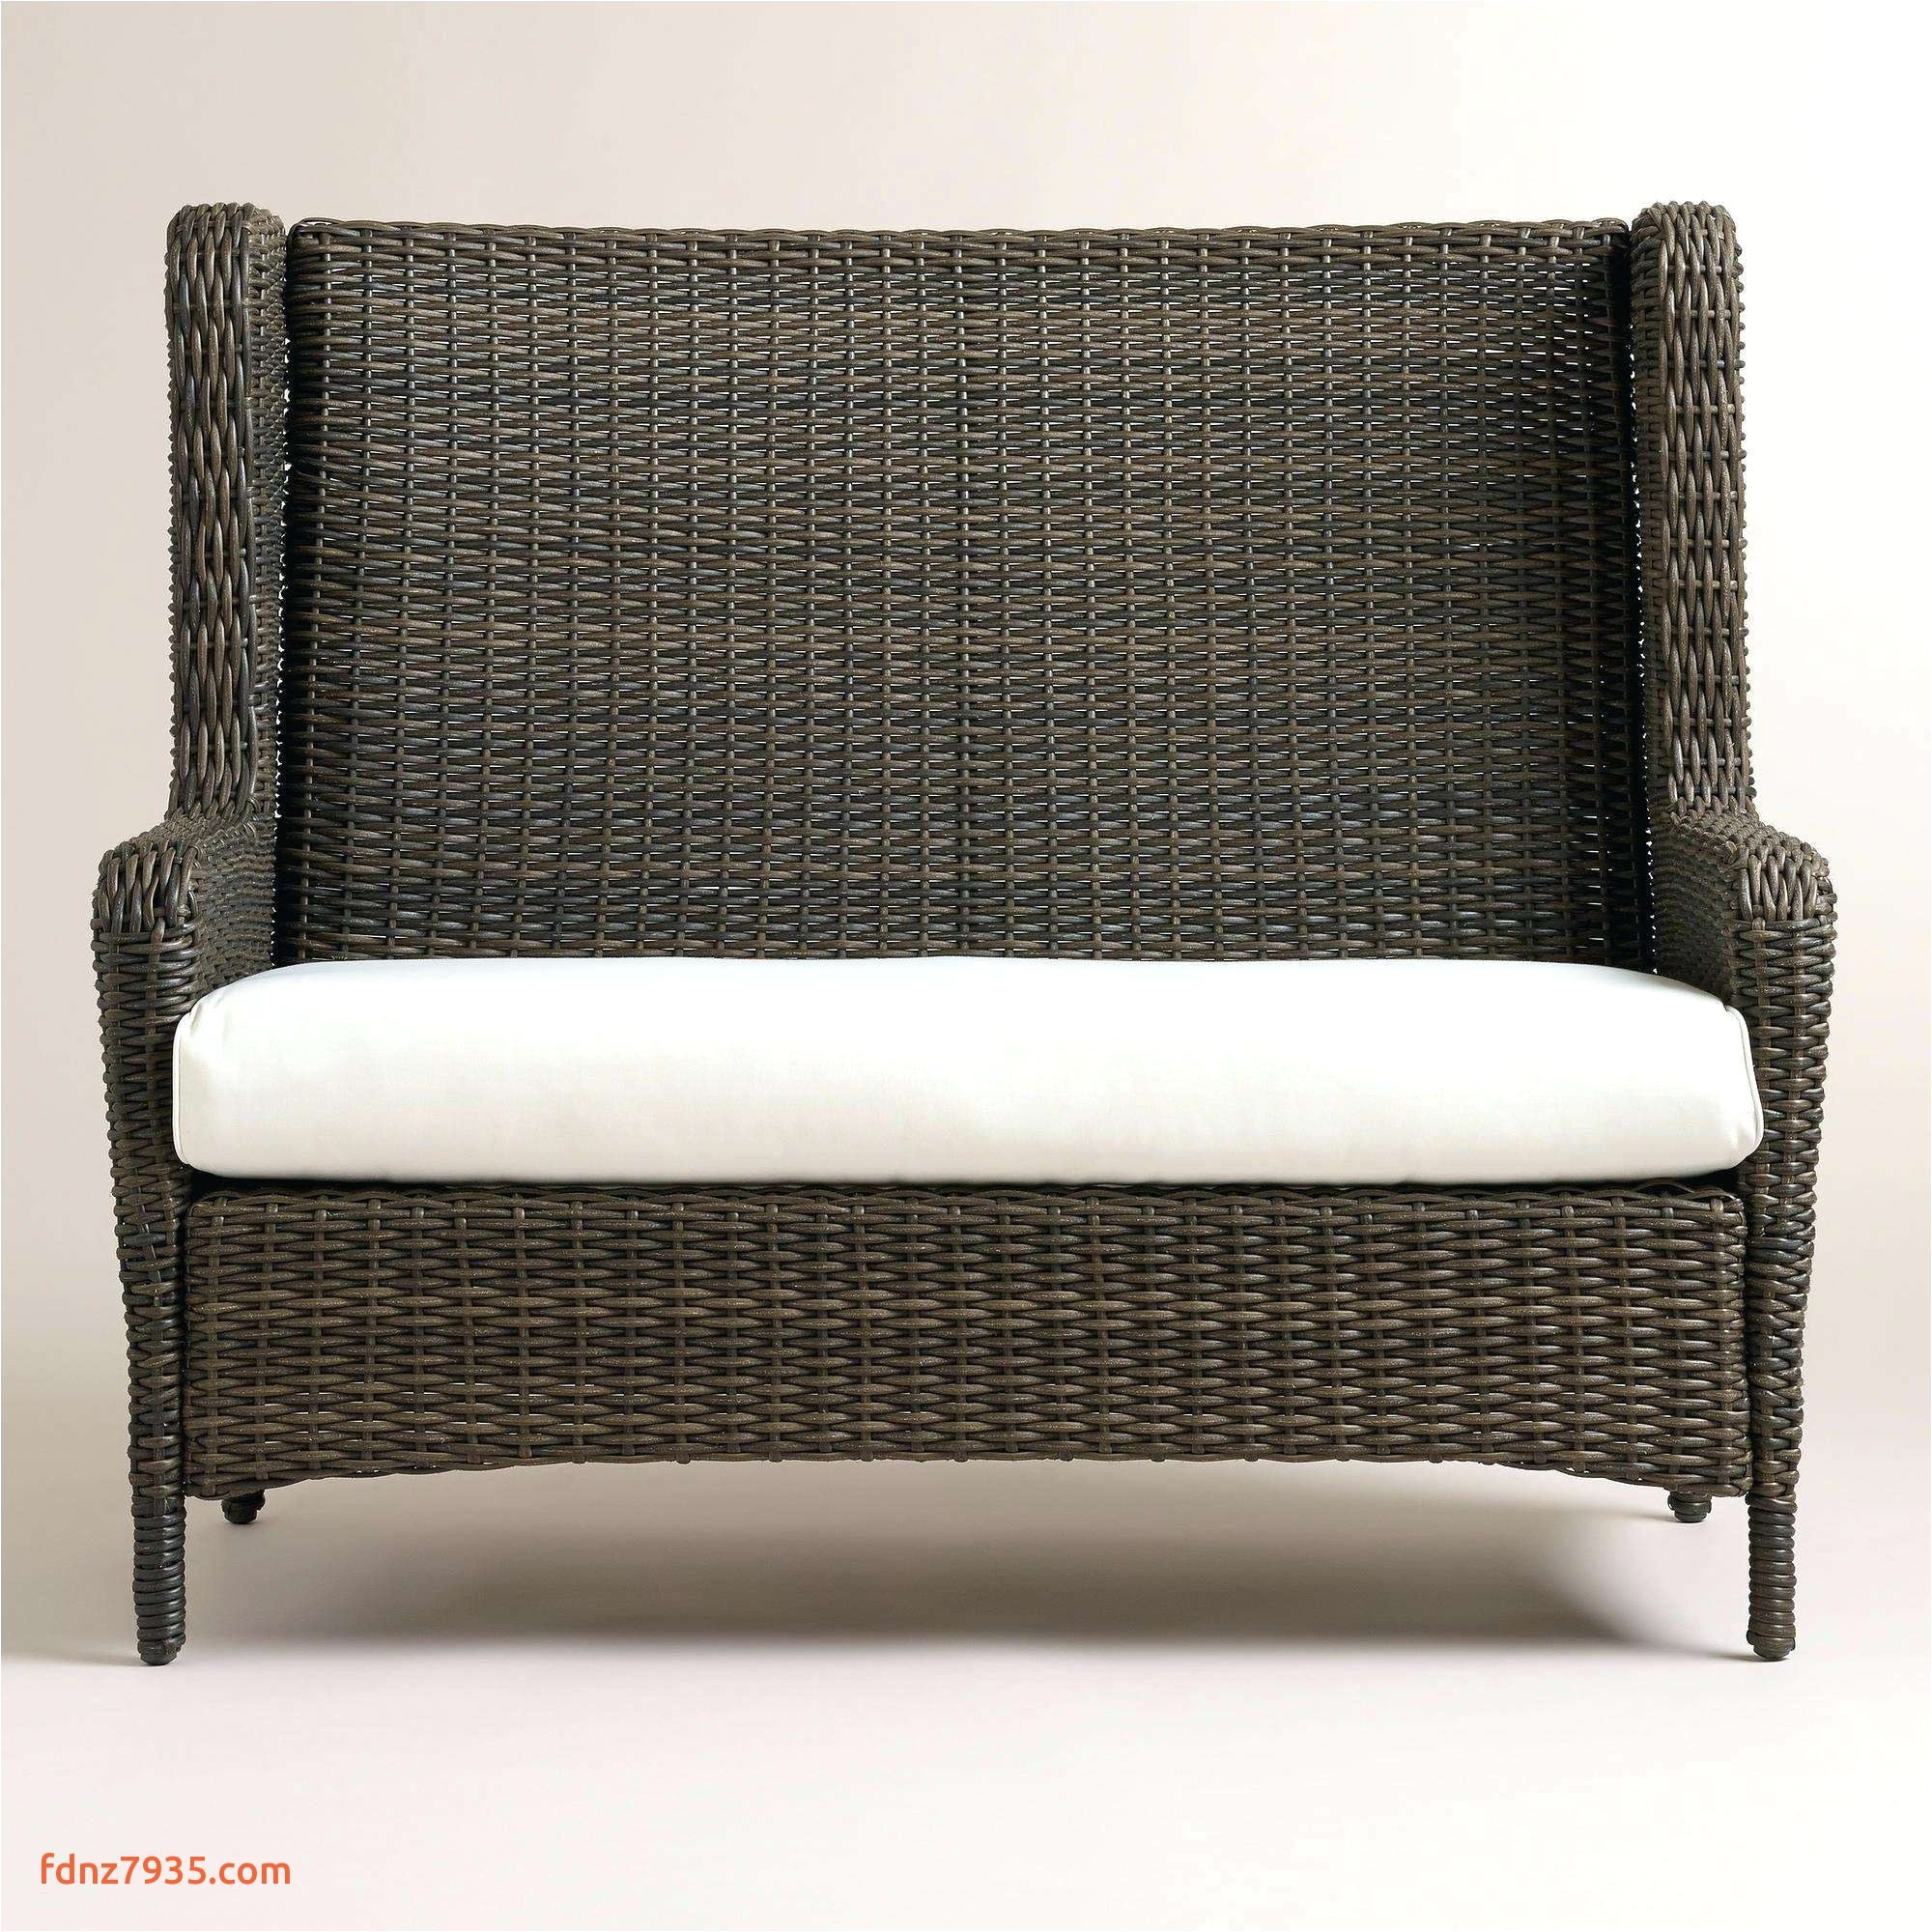 outdoor furniture covers fresh wicker outdoor sofa 0d patio chairs sale replacement cushions ideas